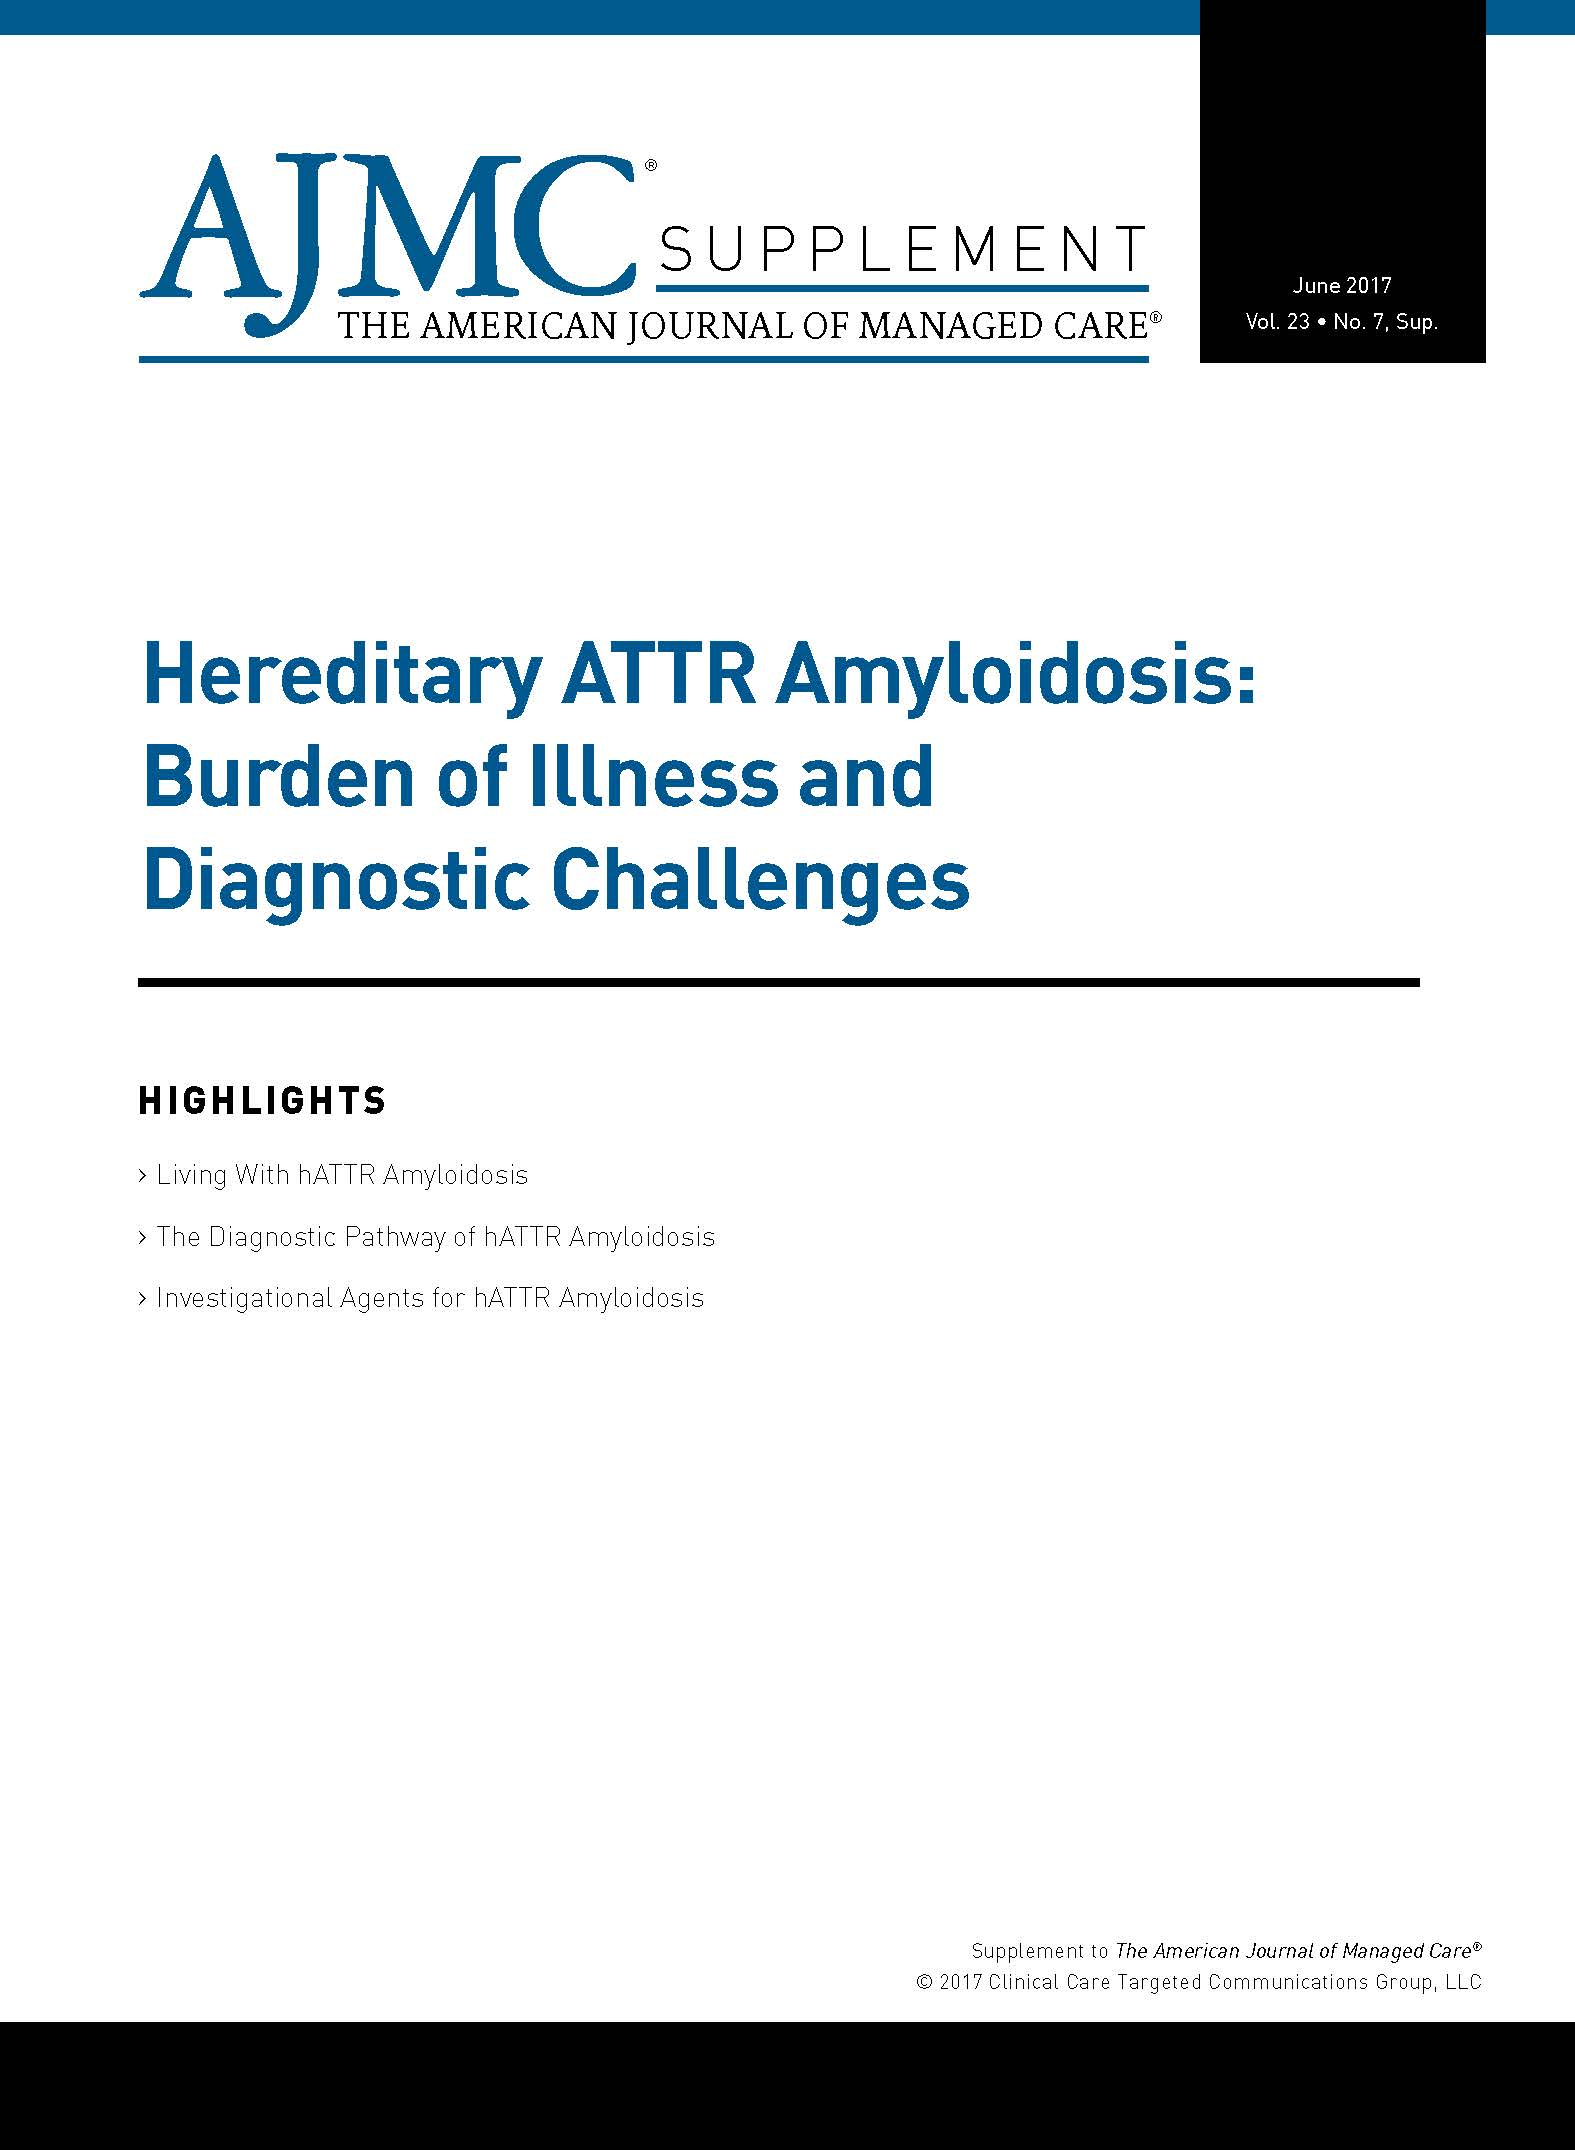 Hereditary ATTR Amyloidosis: Burden of Illness and Diagnostic Challenges